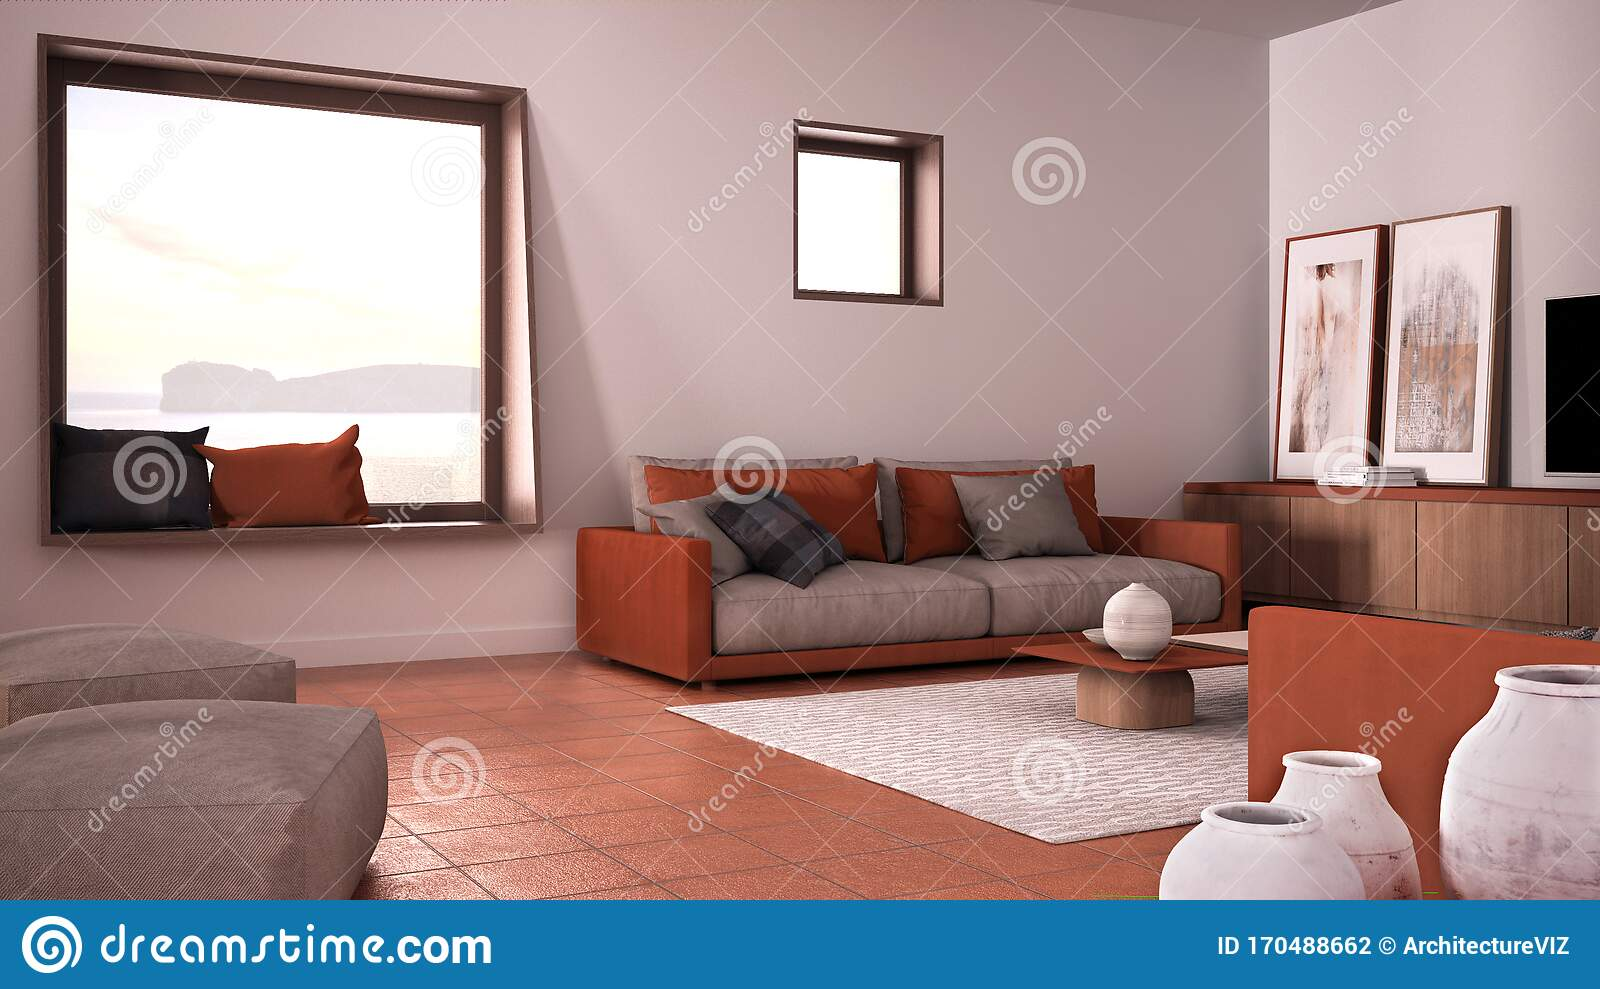 Cosy Orange And Beige Living Room With Sofa And Pillows Lounge Carpet Coffee Table Pouf And Decors Panoramic Window Stock Illustration Illustration Of Furniture Colorful 170488662